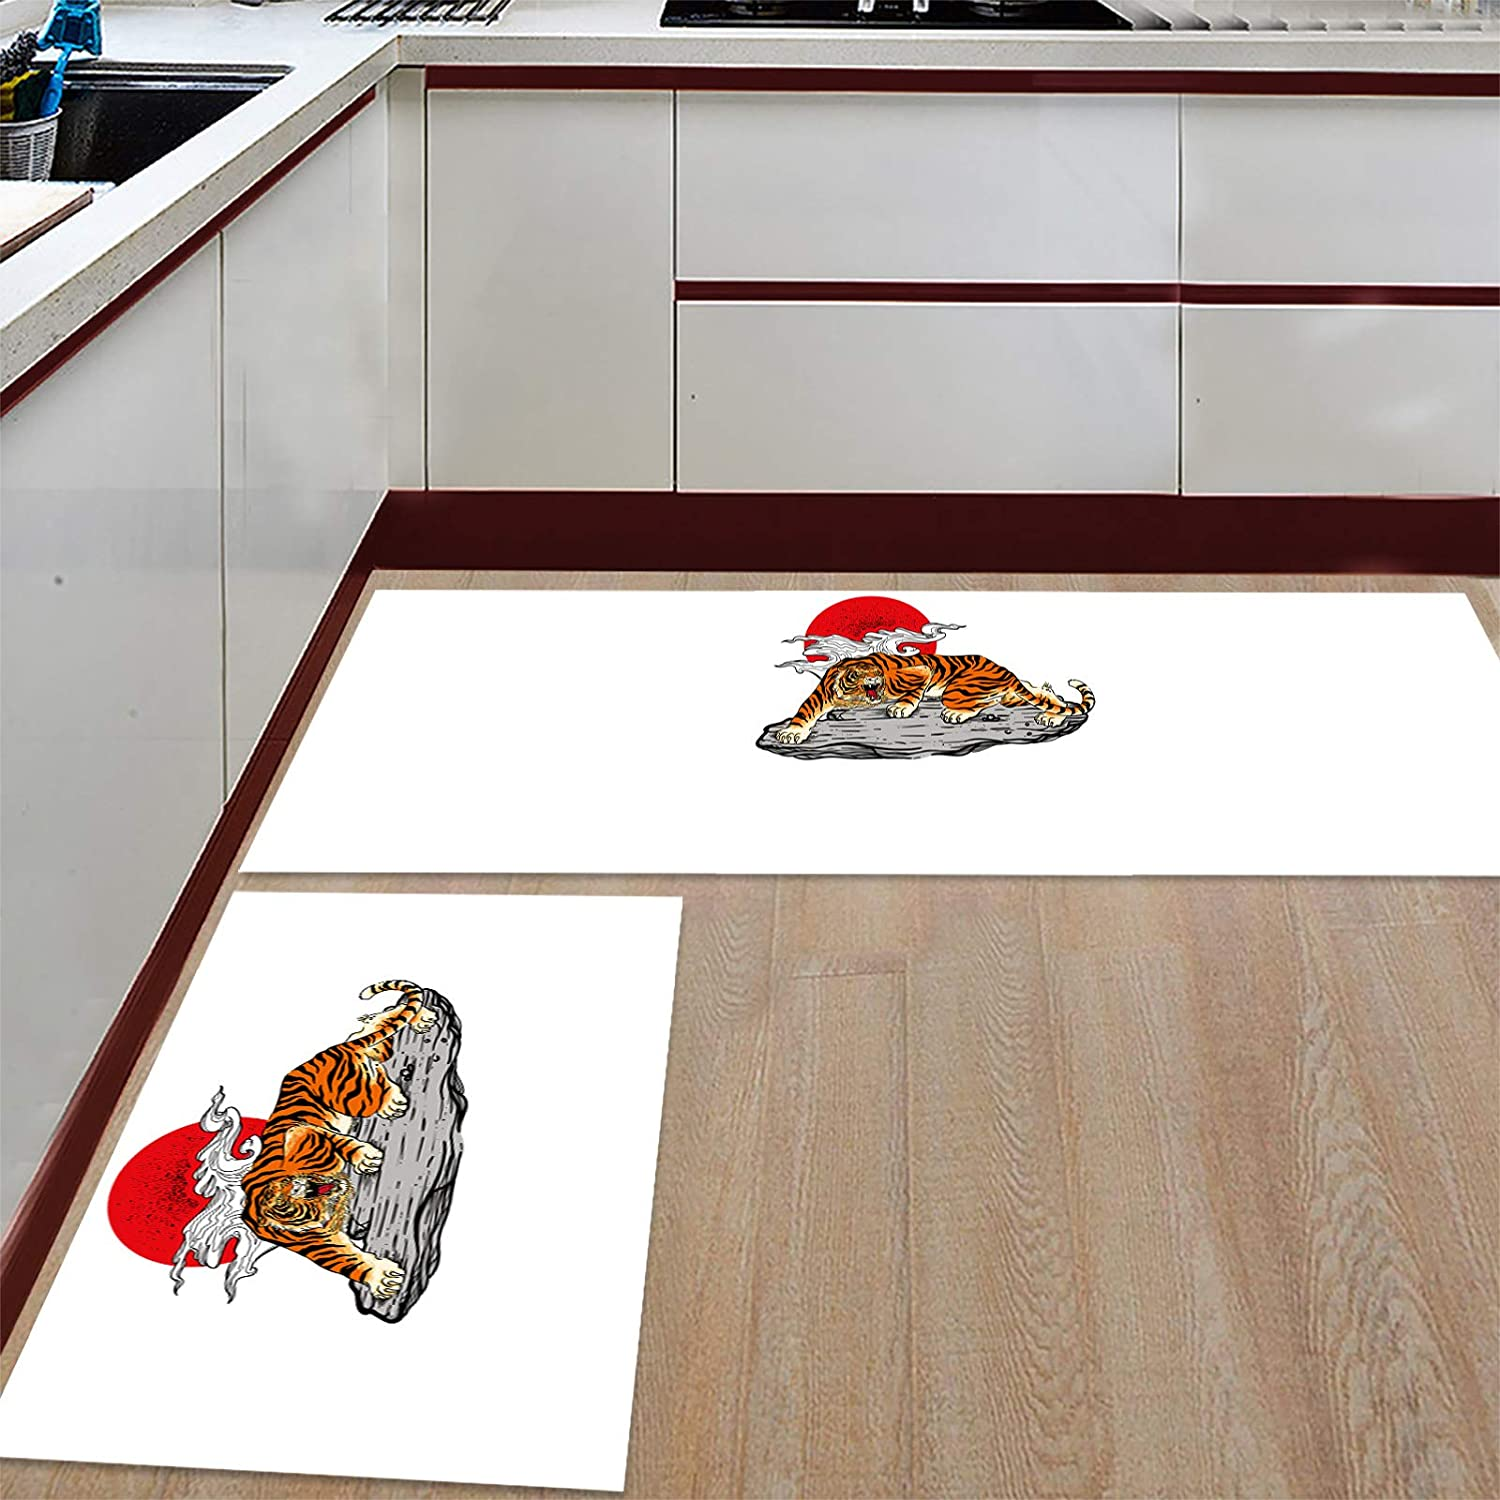 Advancey 2 Gifts Pieces Anti-Slip Kitchen Max 58% OFF Mats Stone with Tiger Re and